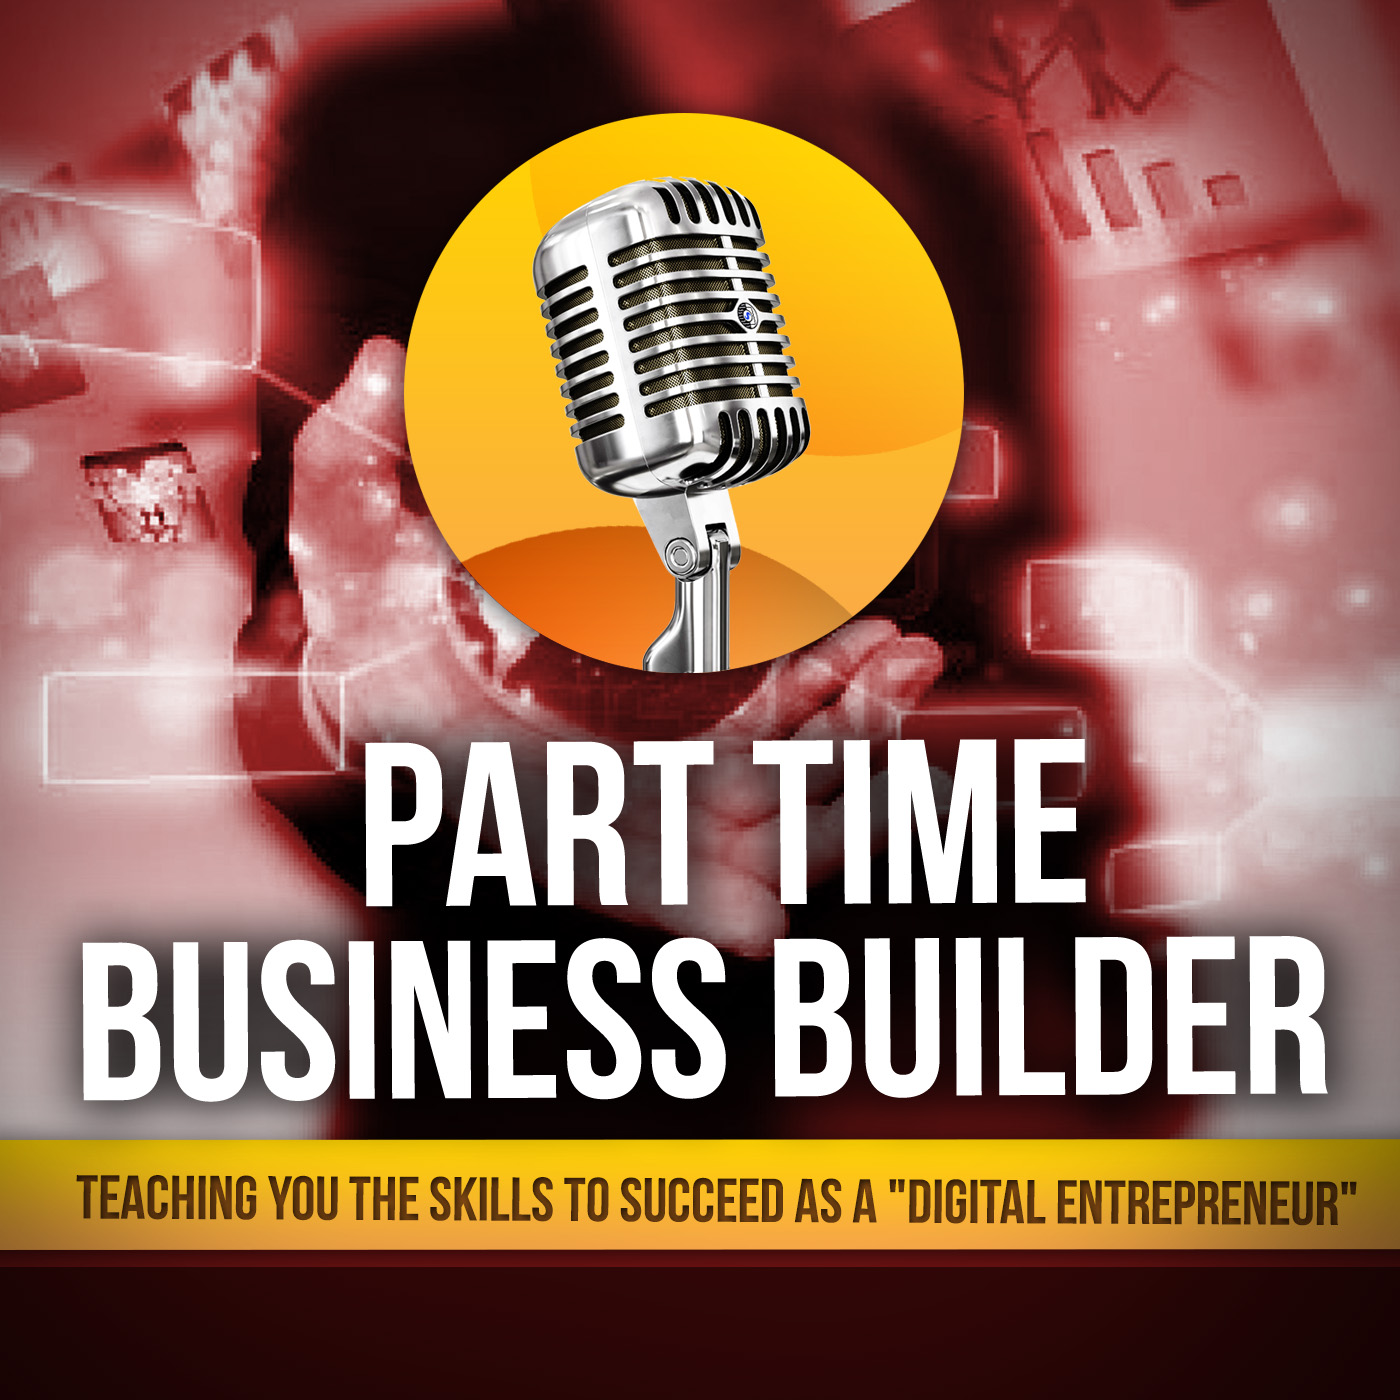 PartTime Business Builder